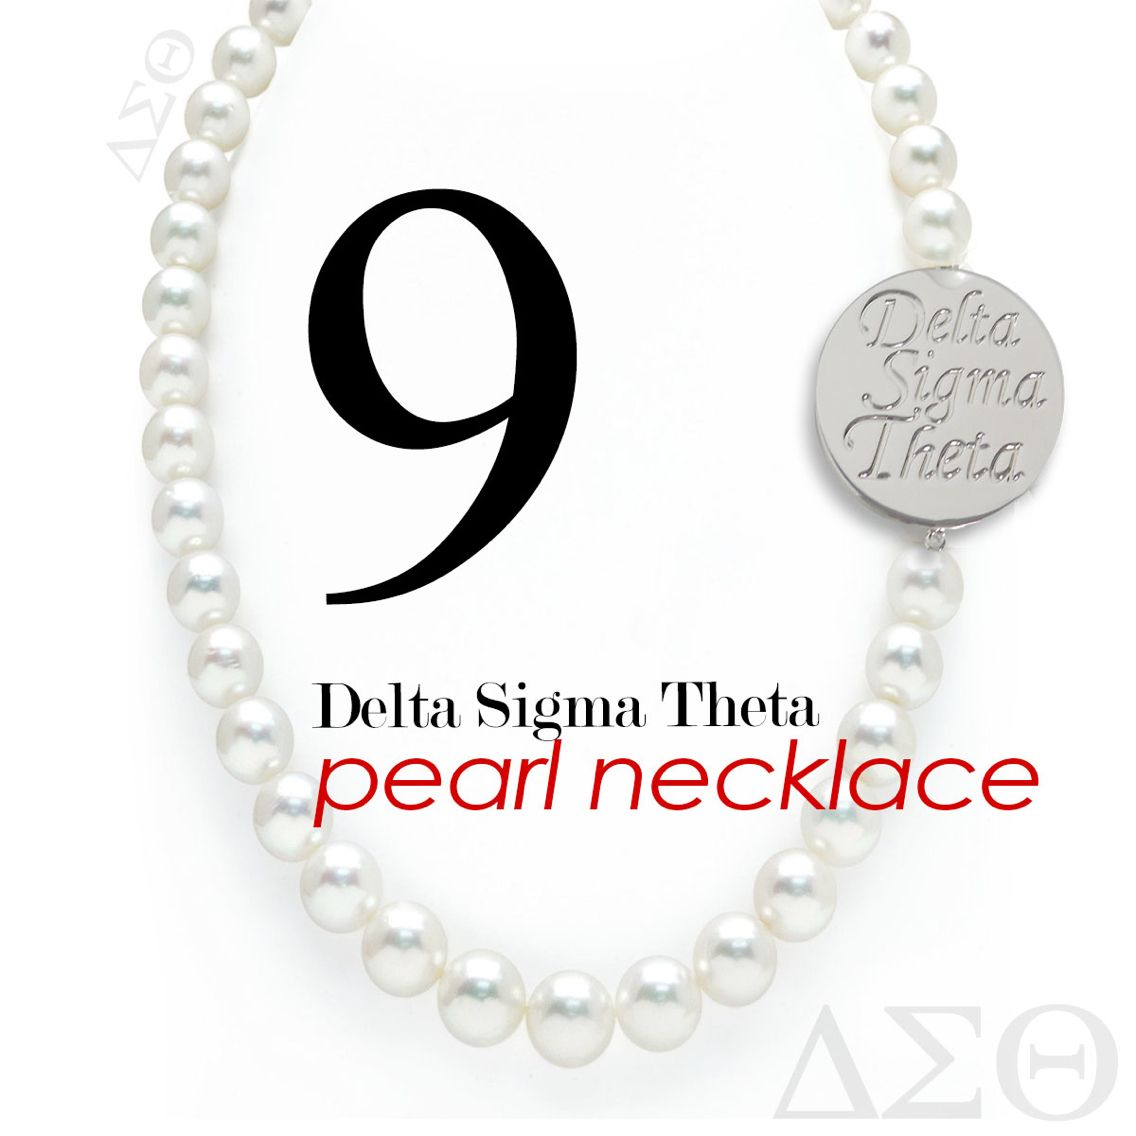 Delta sigma theta greek symbols gallery symbol and sign ideas pearls white shell pearl necklace with double sided silver plated white shell pearl necklace with double biocorpaavc